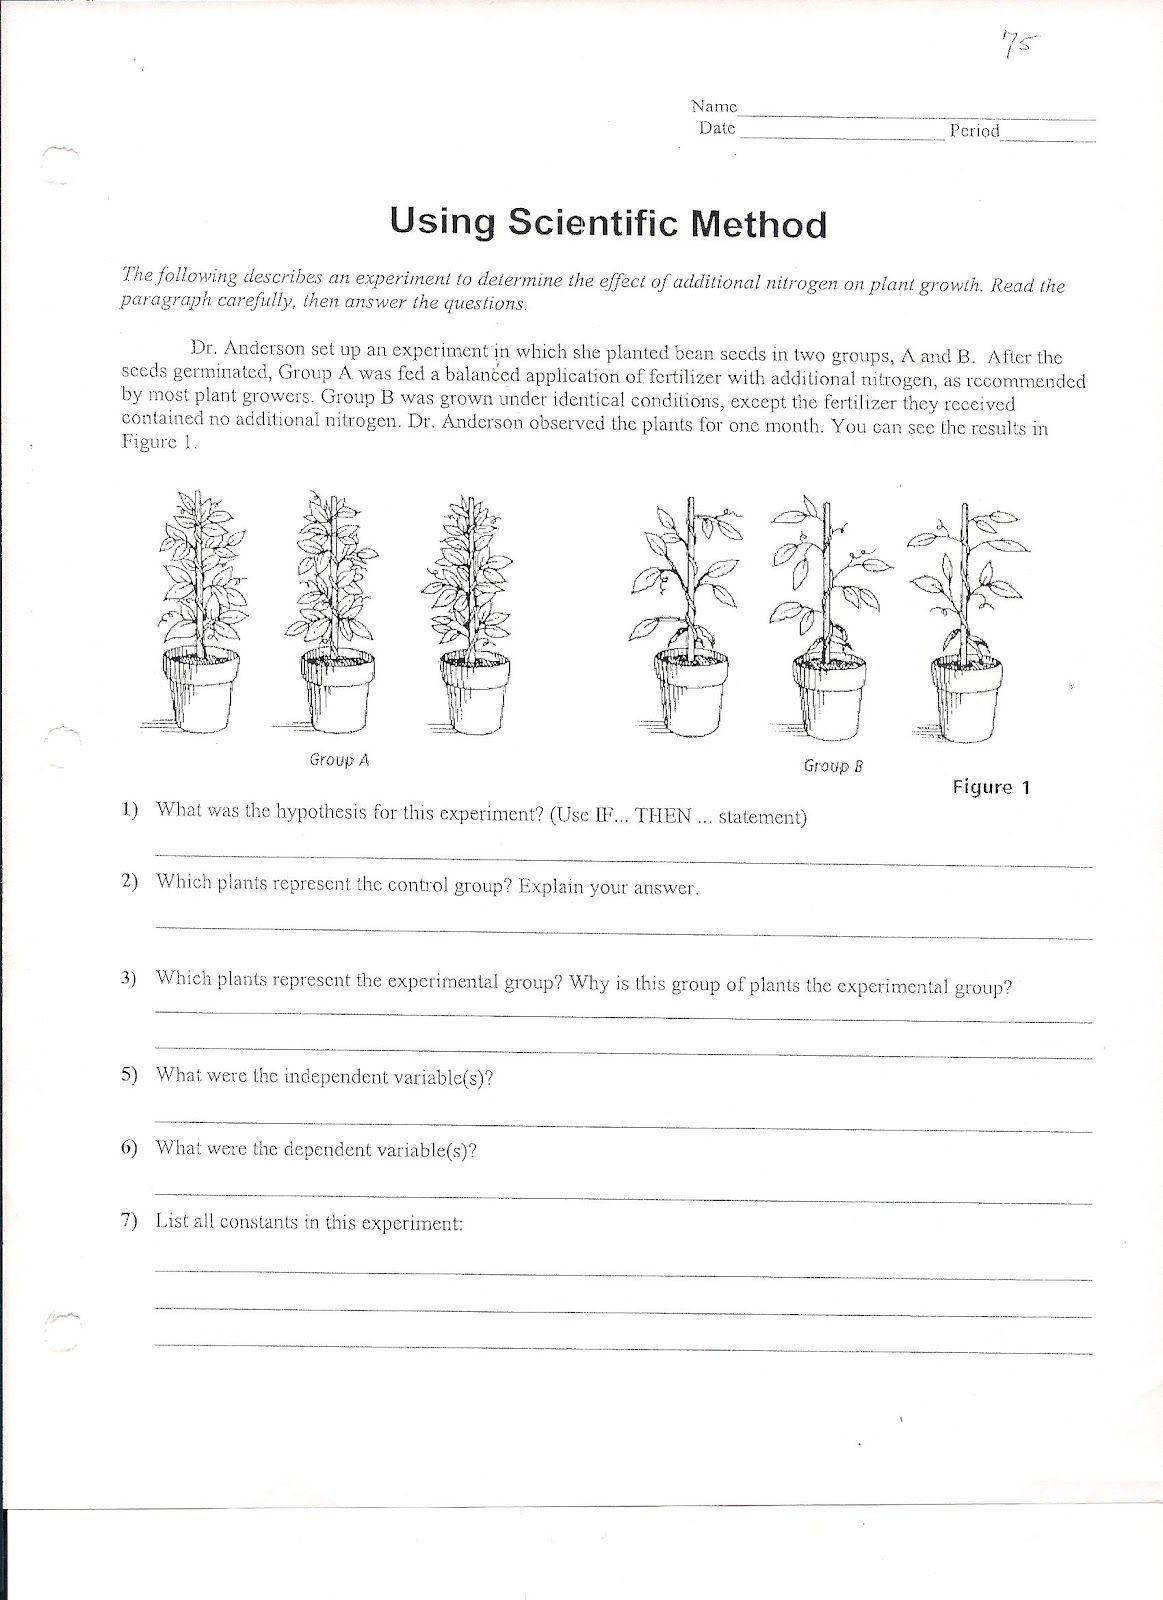 Practice Scientific Method Worksheet Answer Key